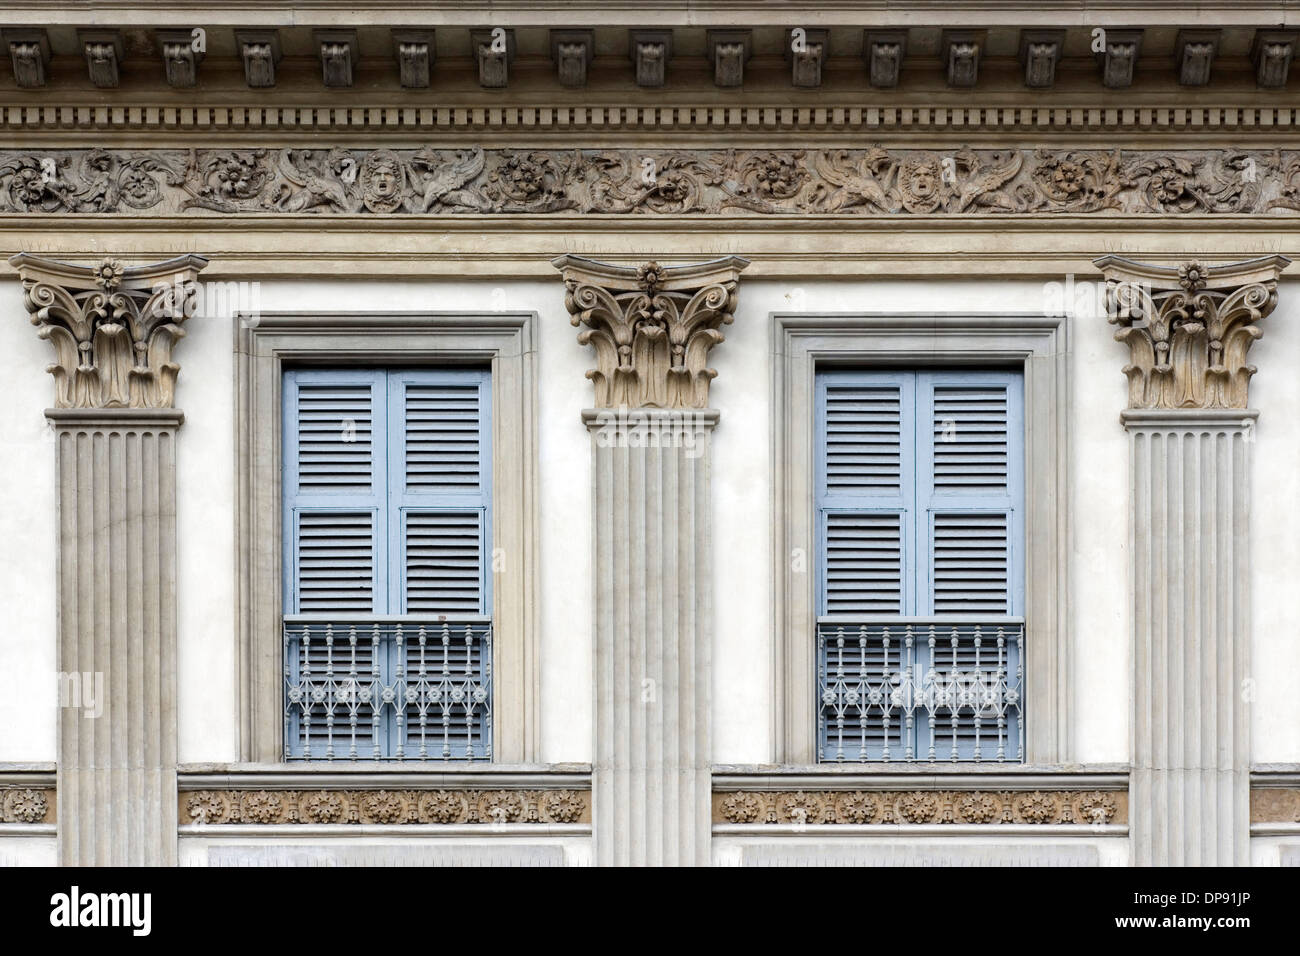 Architectural Details Milan Twin Windows With Decorated Frieze And Pilasters Capitals